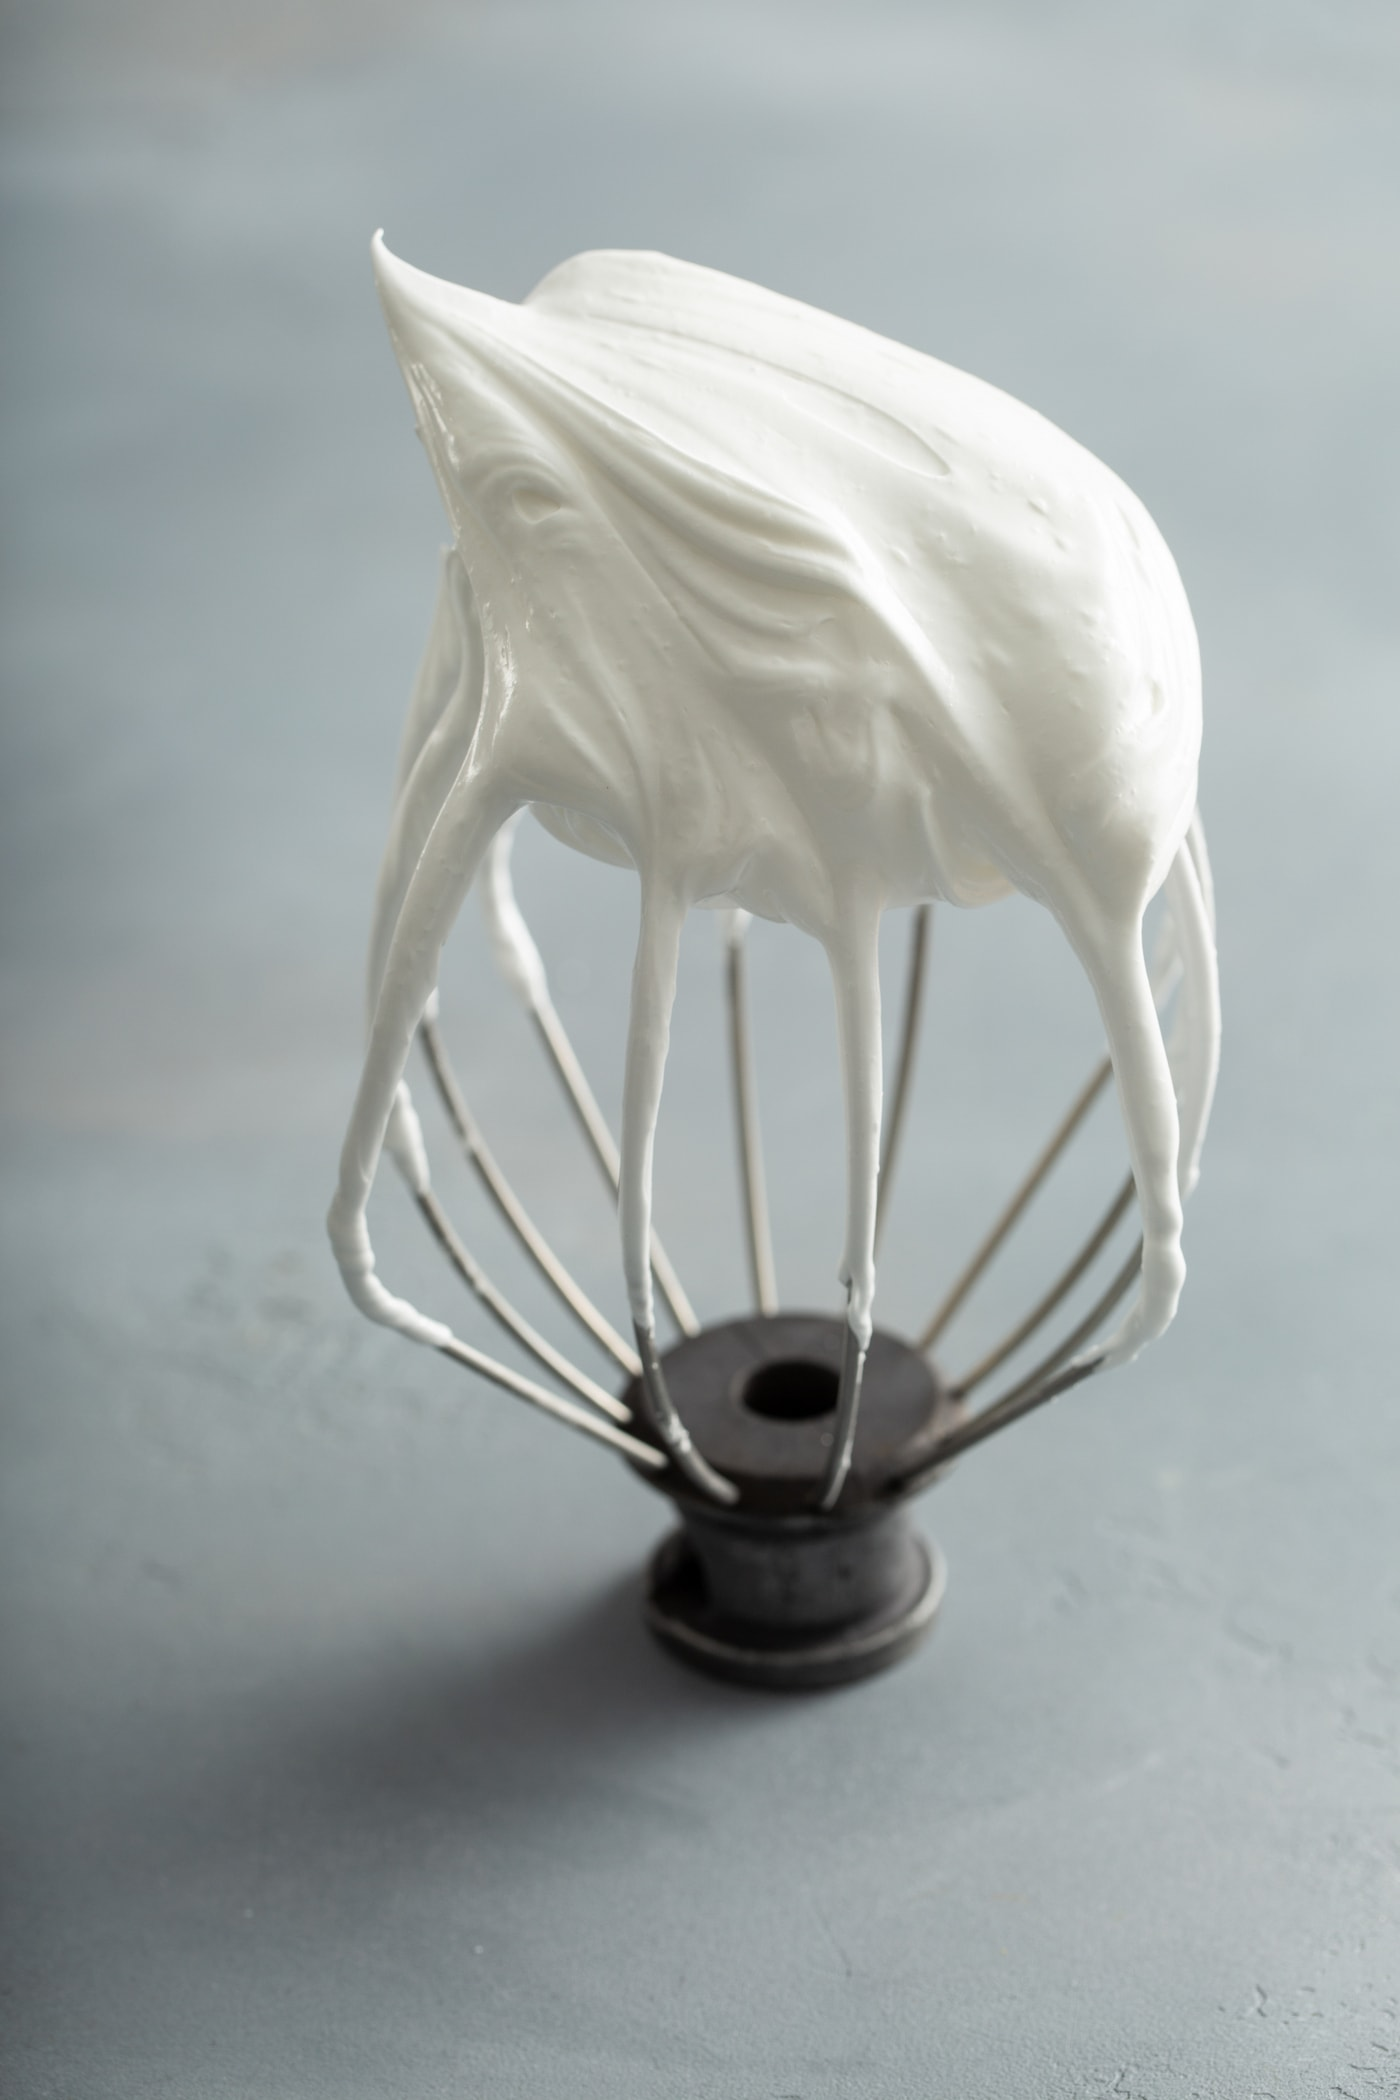 A beater from a stand mixer with firm meringue on the end.